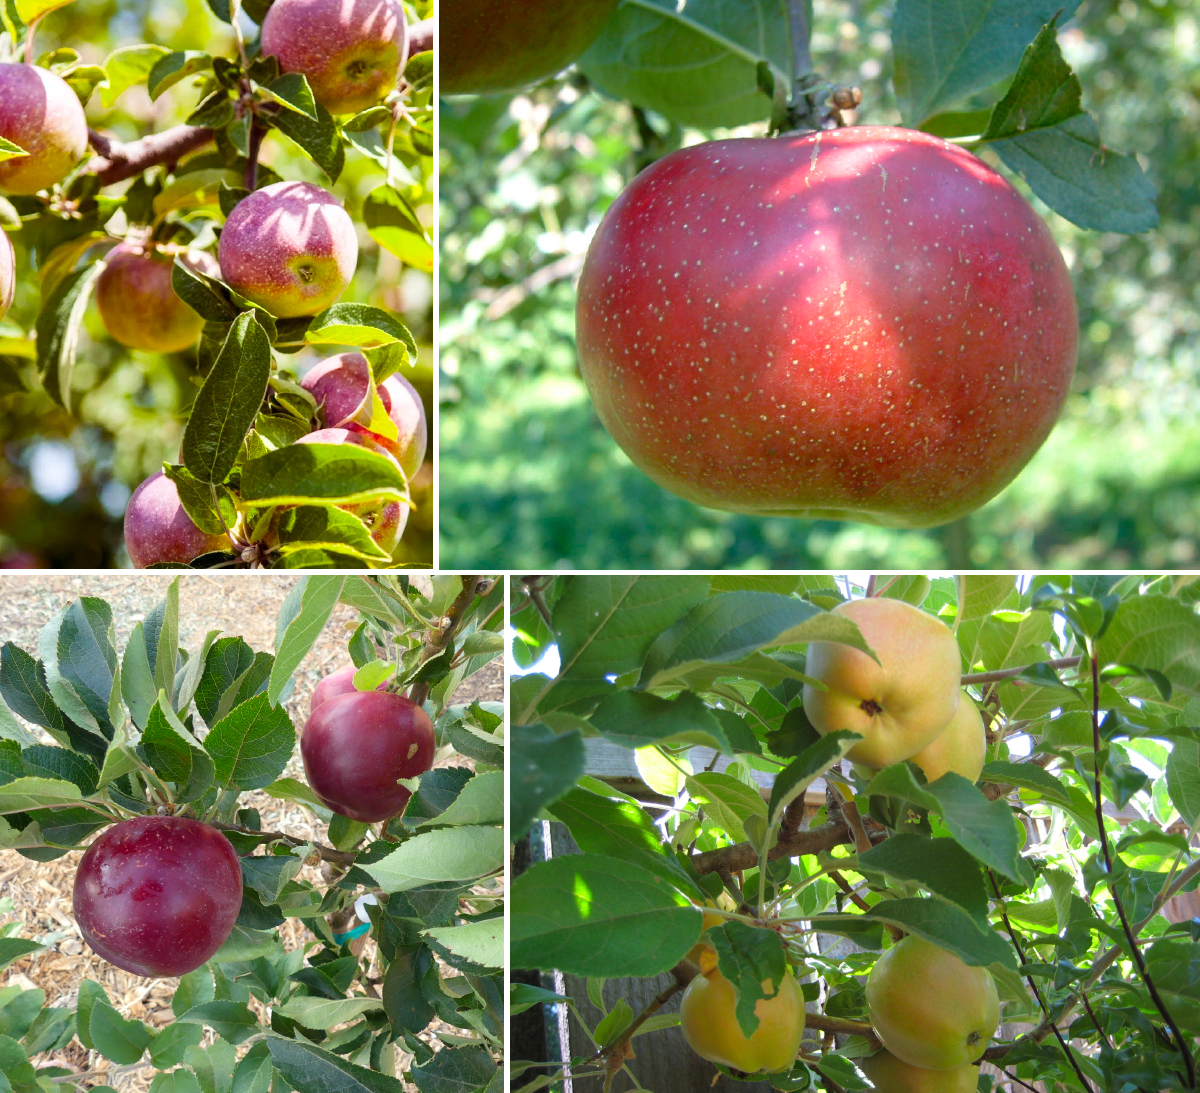 a collage of four different apples. the crab apple is small, the rambo is enormous, the surprise is yellow, and the arkansas black is very dark